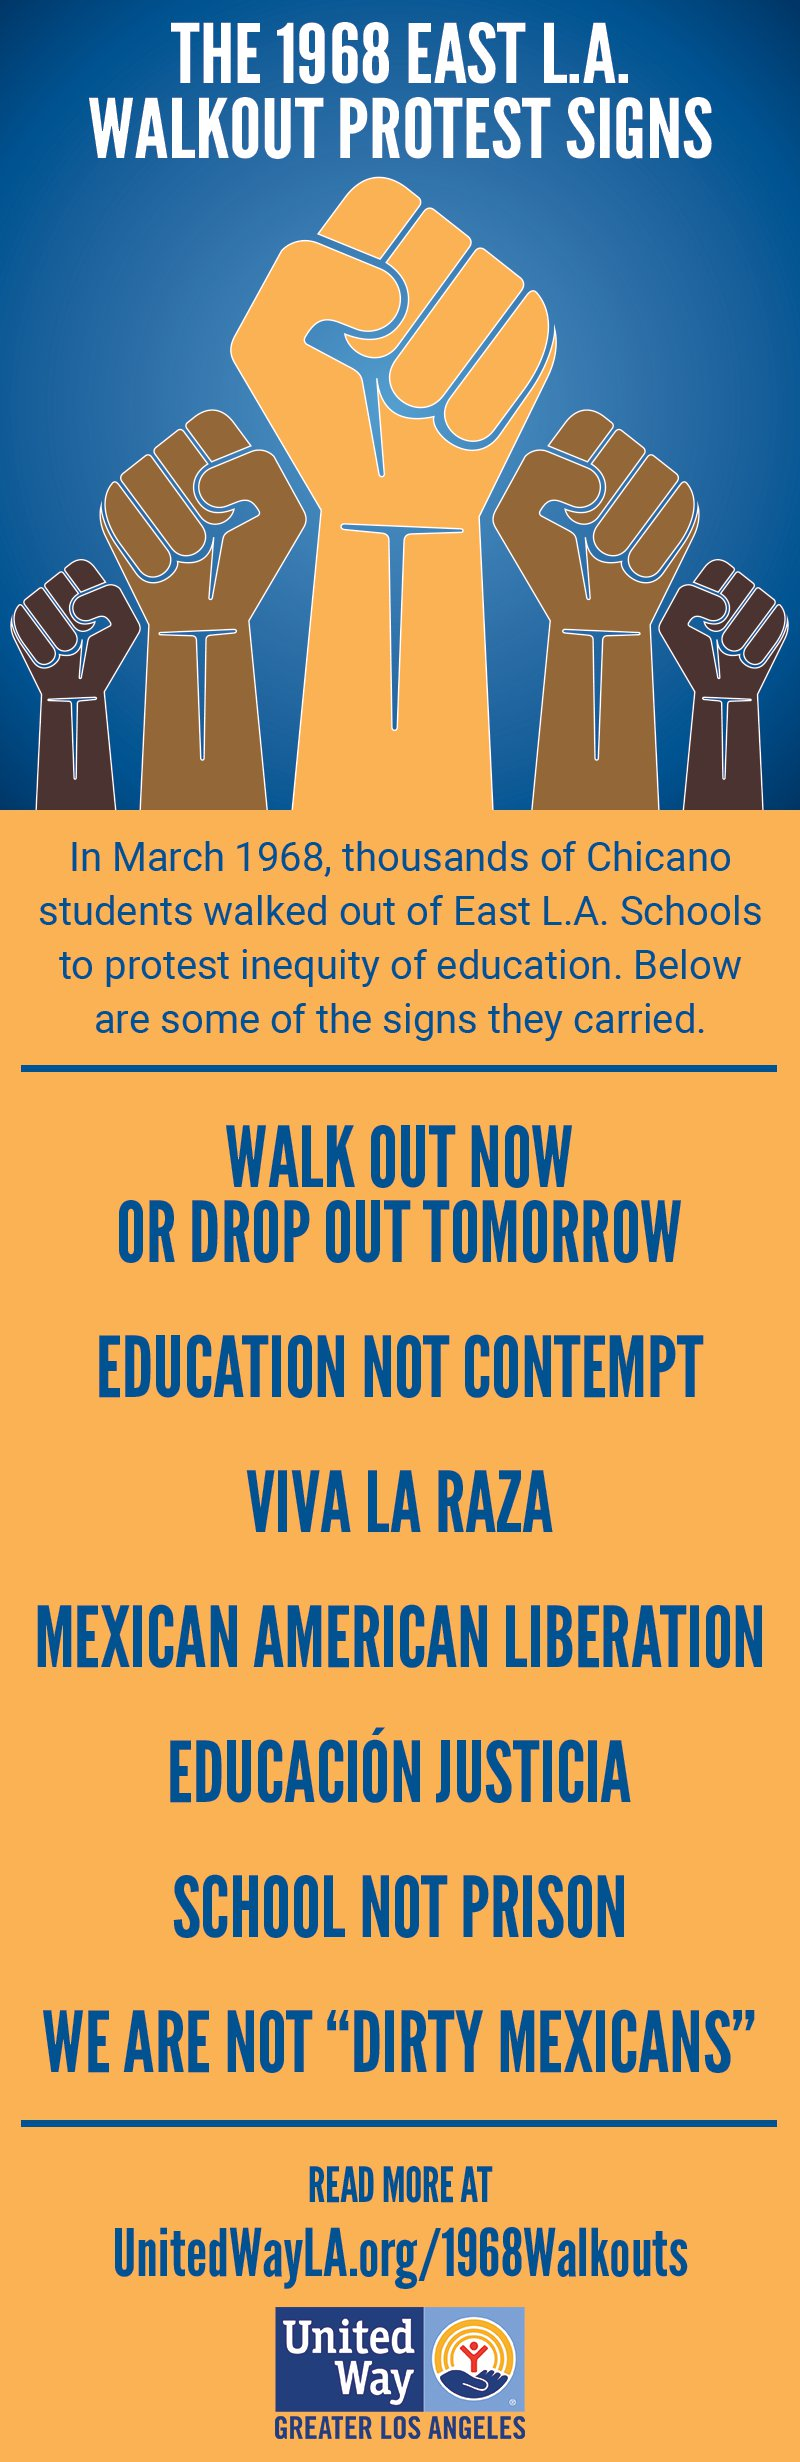 1968 East L.A. School Walkout Protest Signs